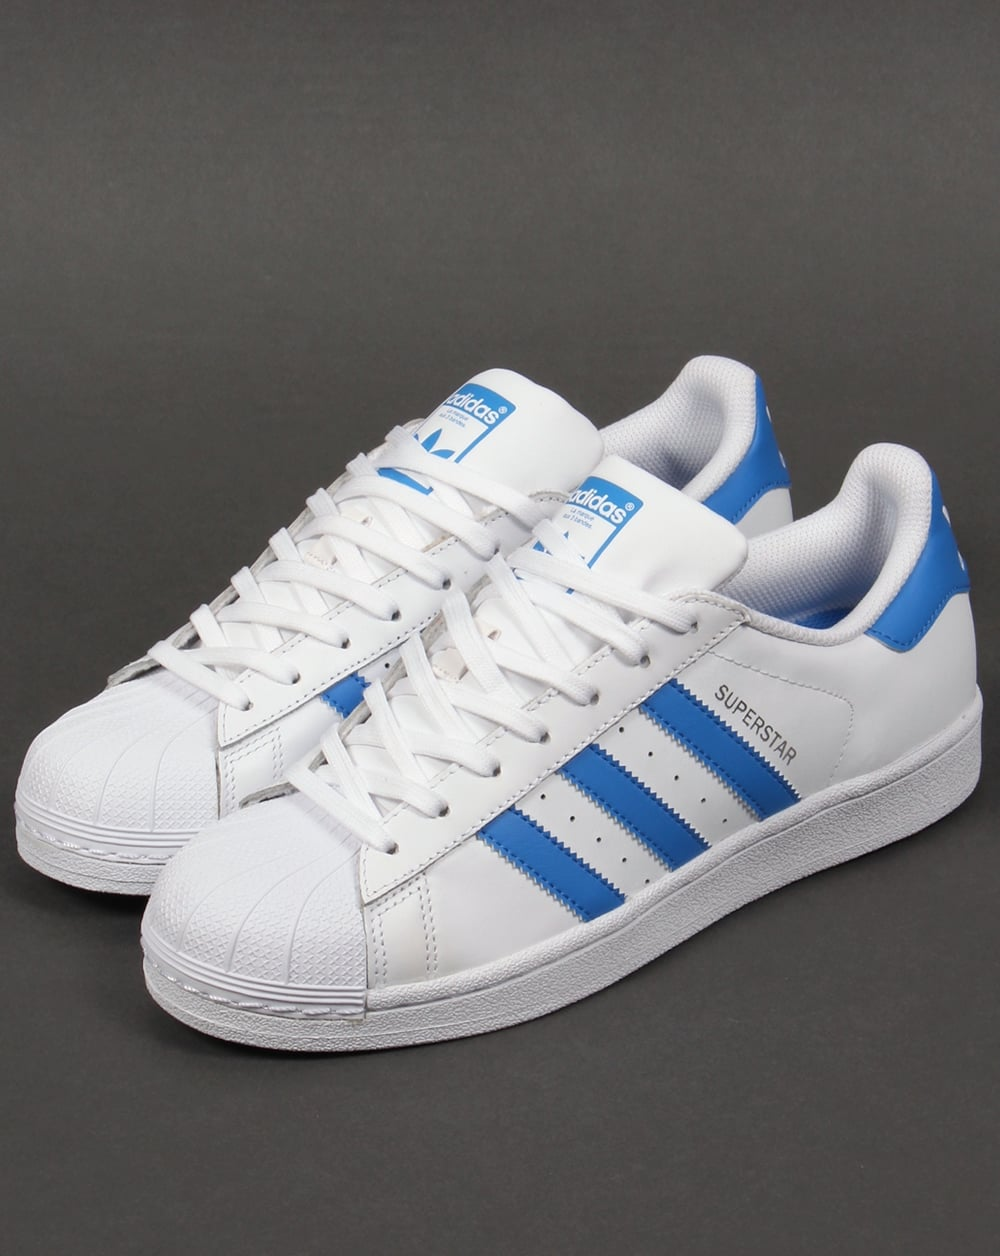 Adidas Superstar Navy Blue Stripes